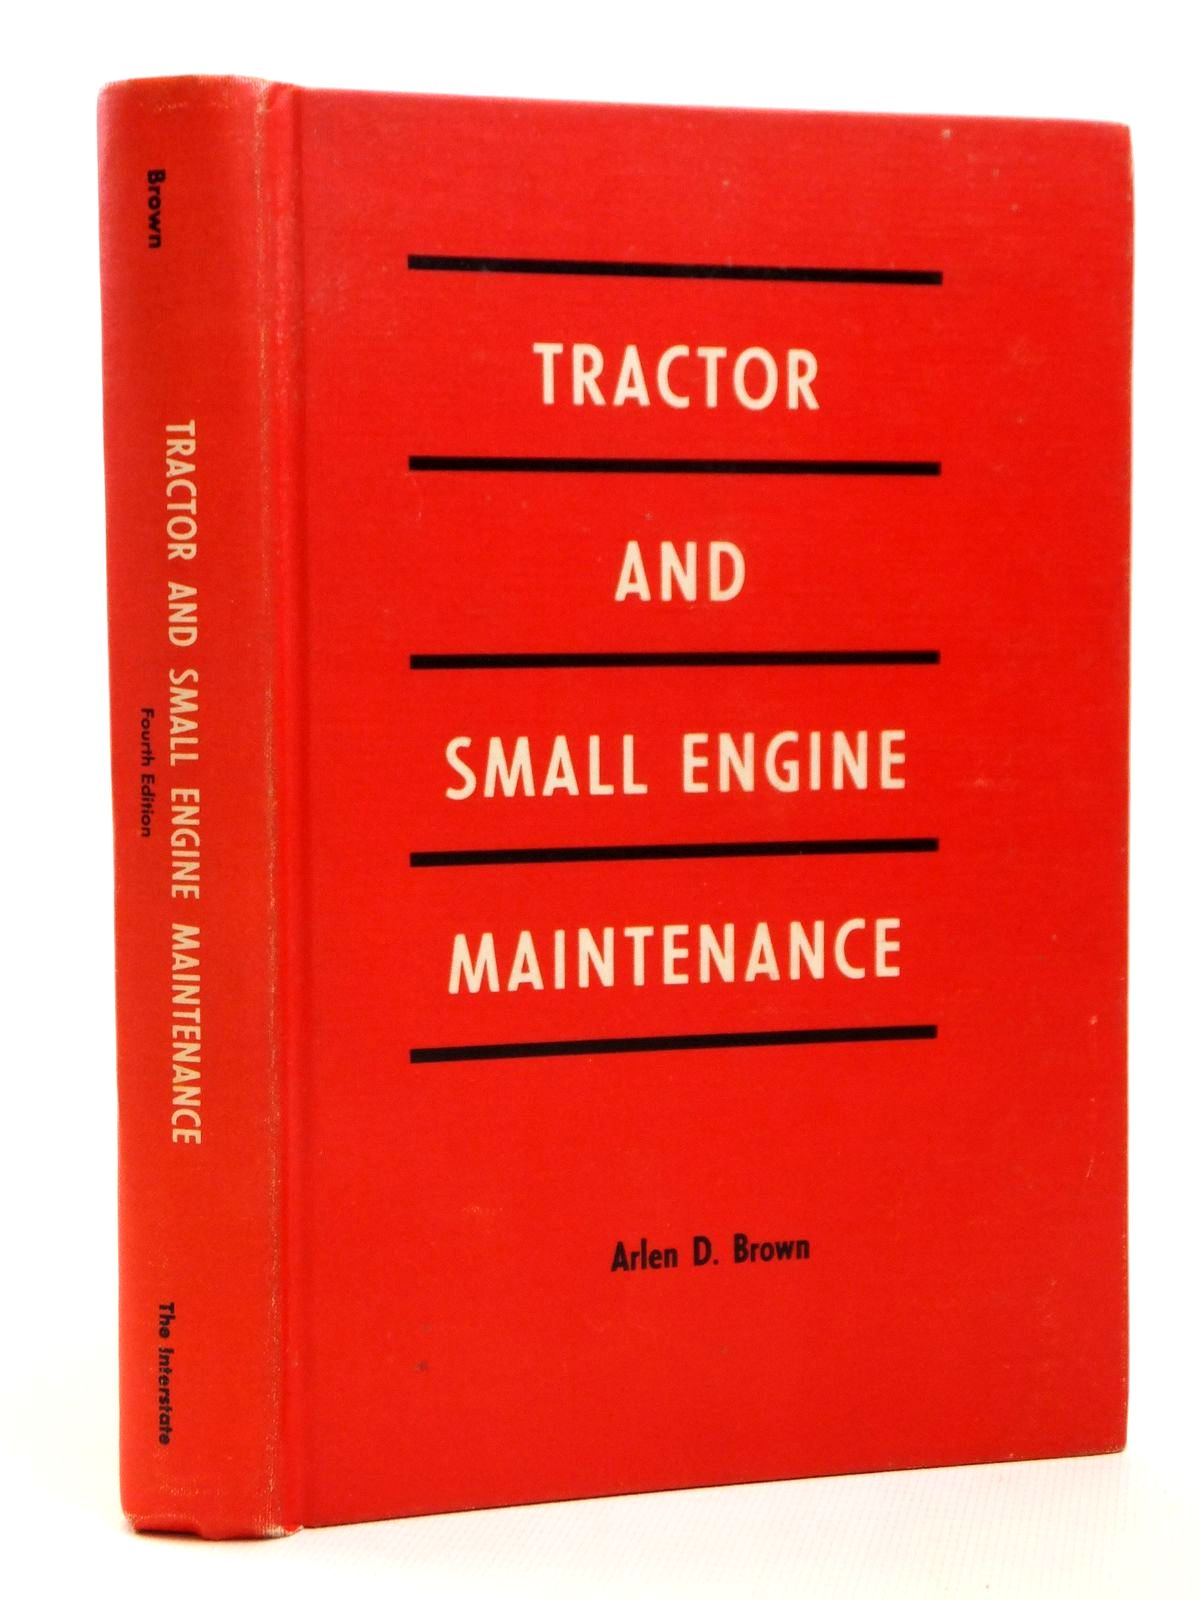 Photo of TRACTOR AND SMALL ENGINE MAINTENANCE written by Brown, Arlen D. published by The Interstate Printers And Publishers (STOCK CODE: 1608298)  for sale by Stella & Rose's Books